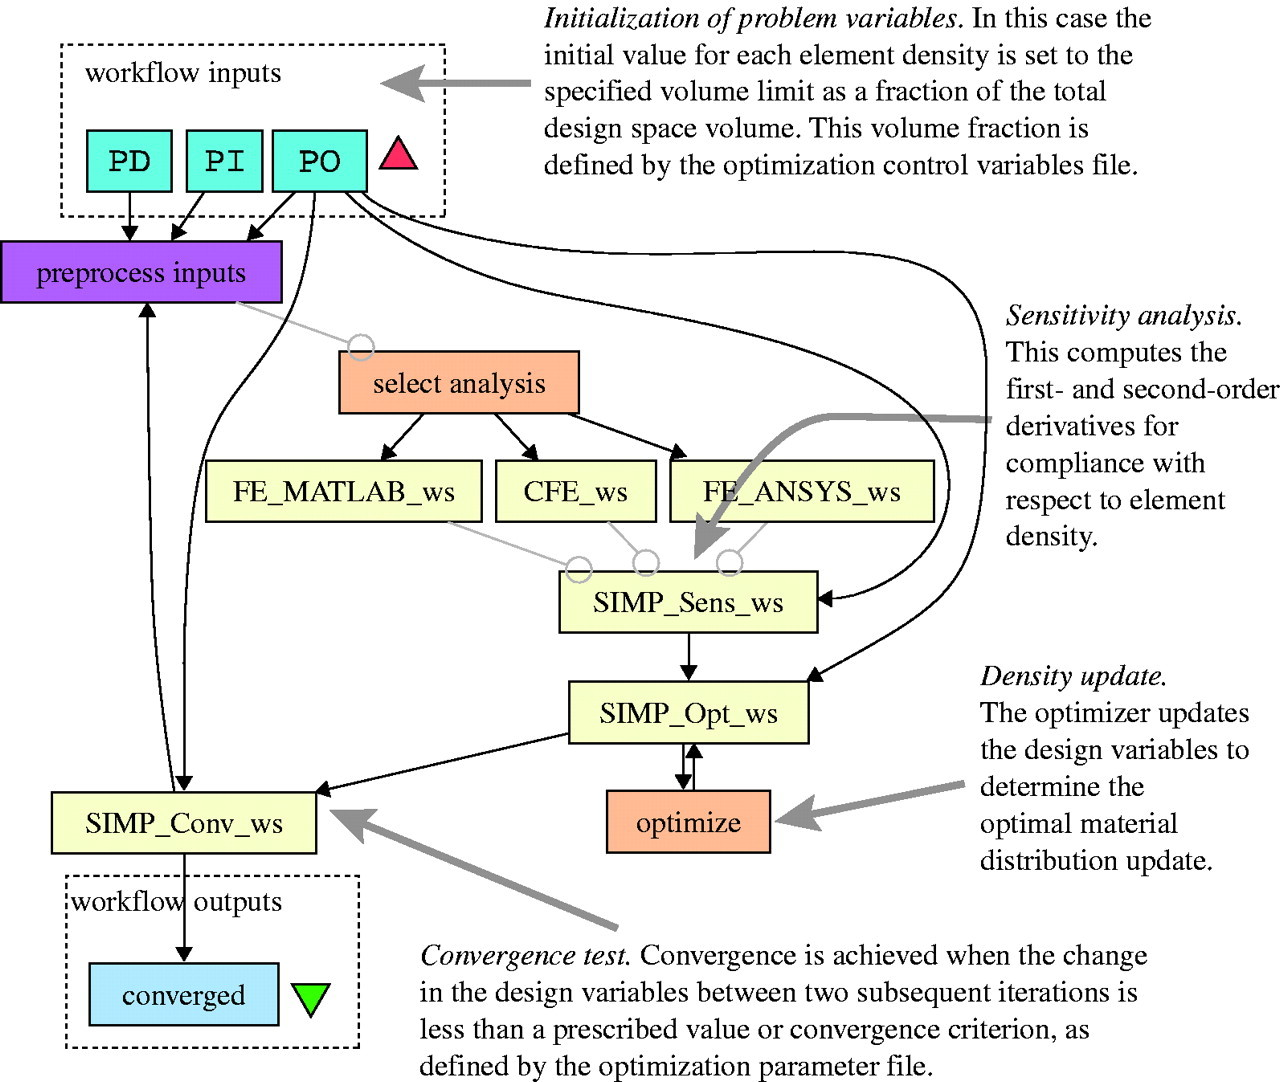 Engineering design optimization using services and workflows